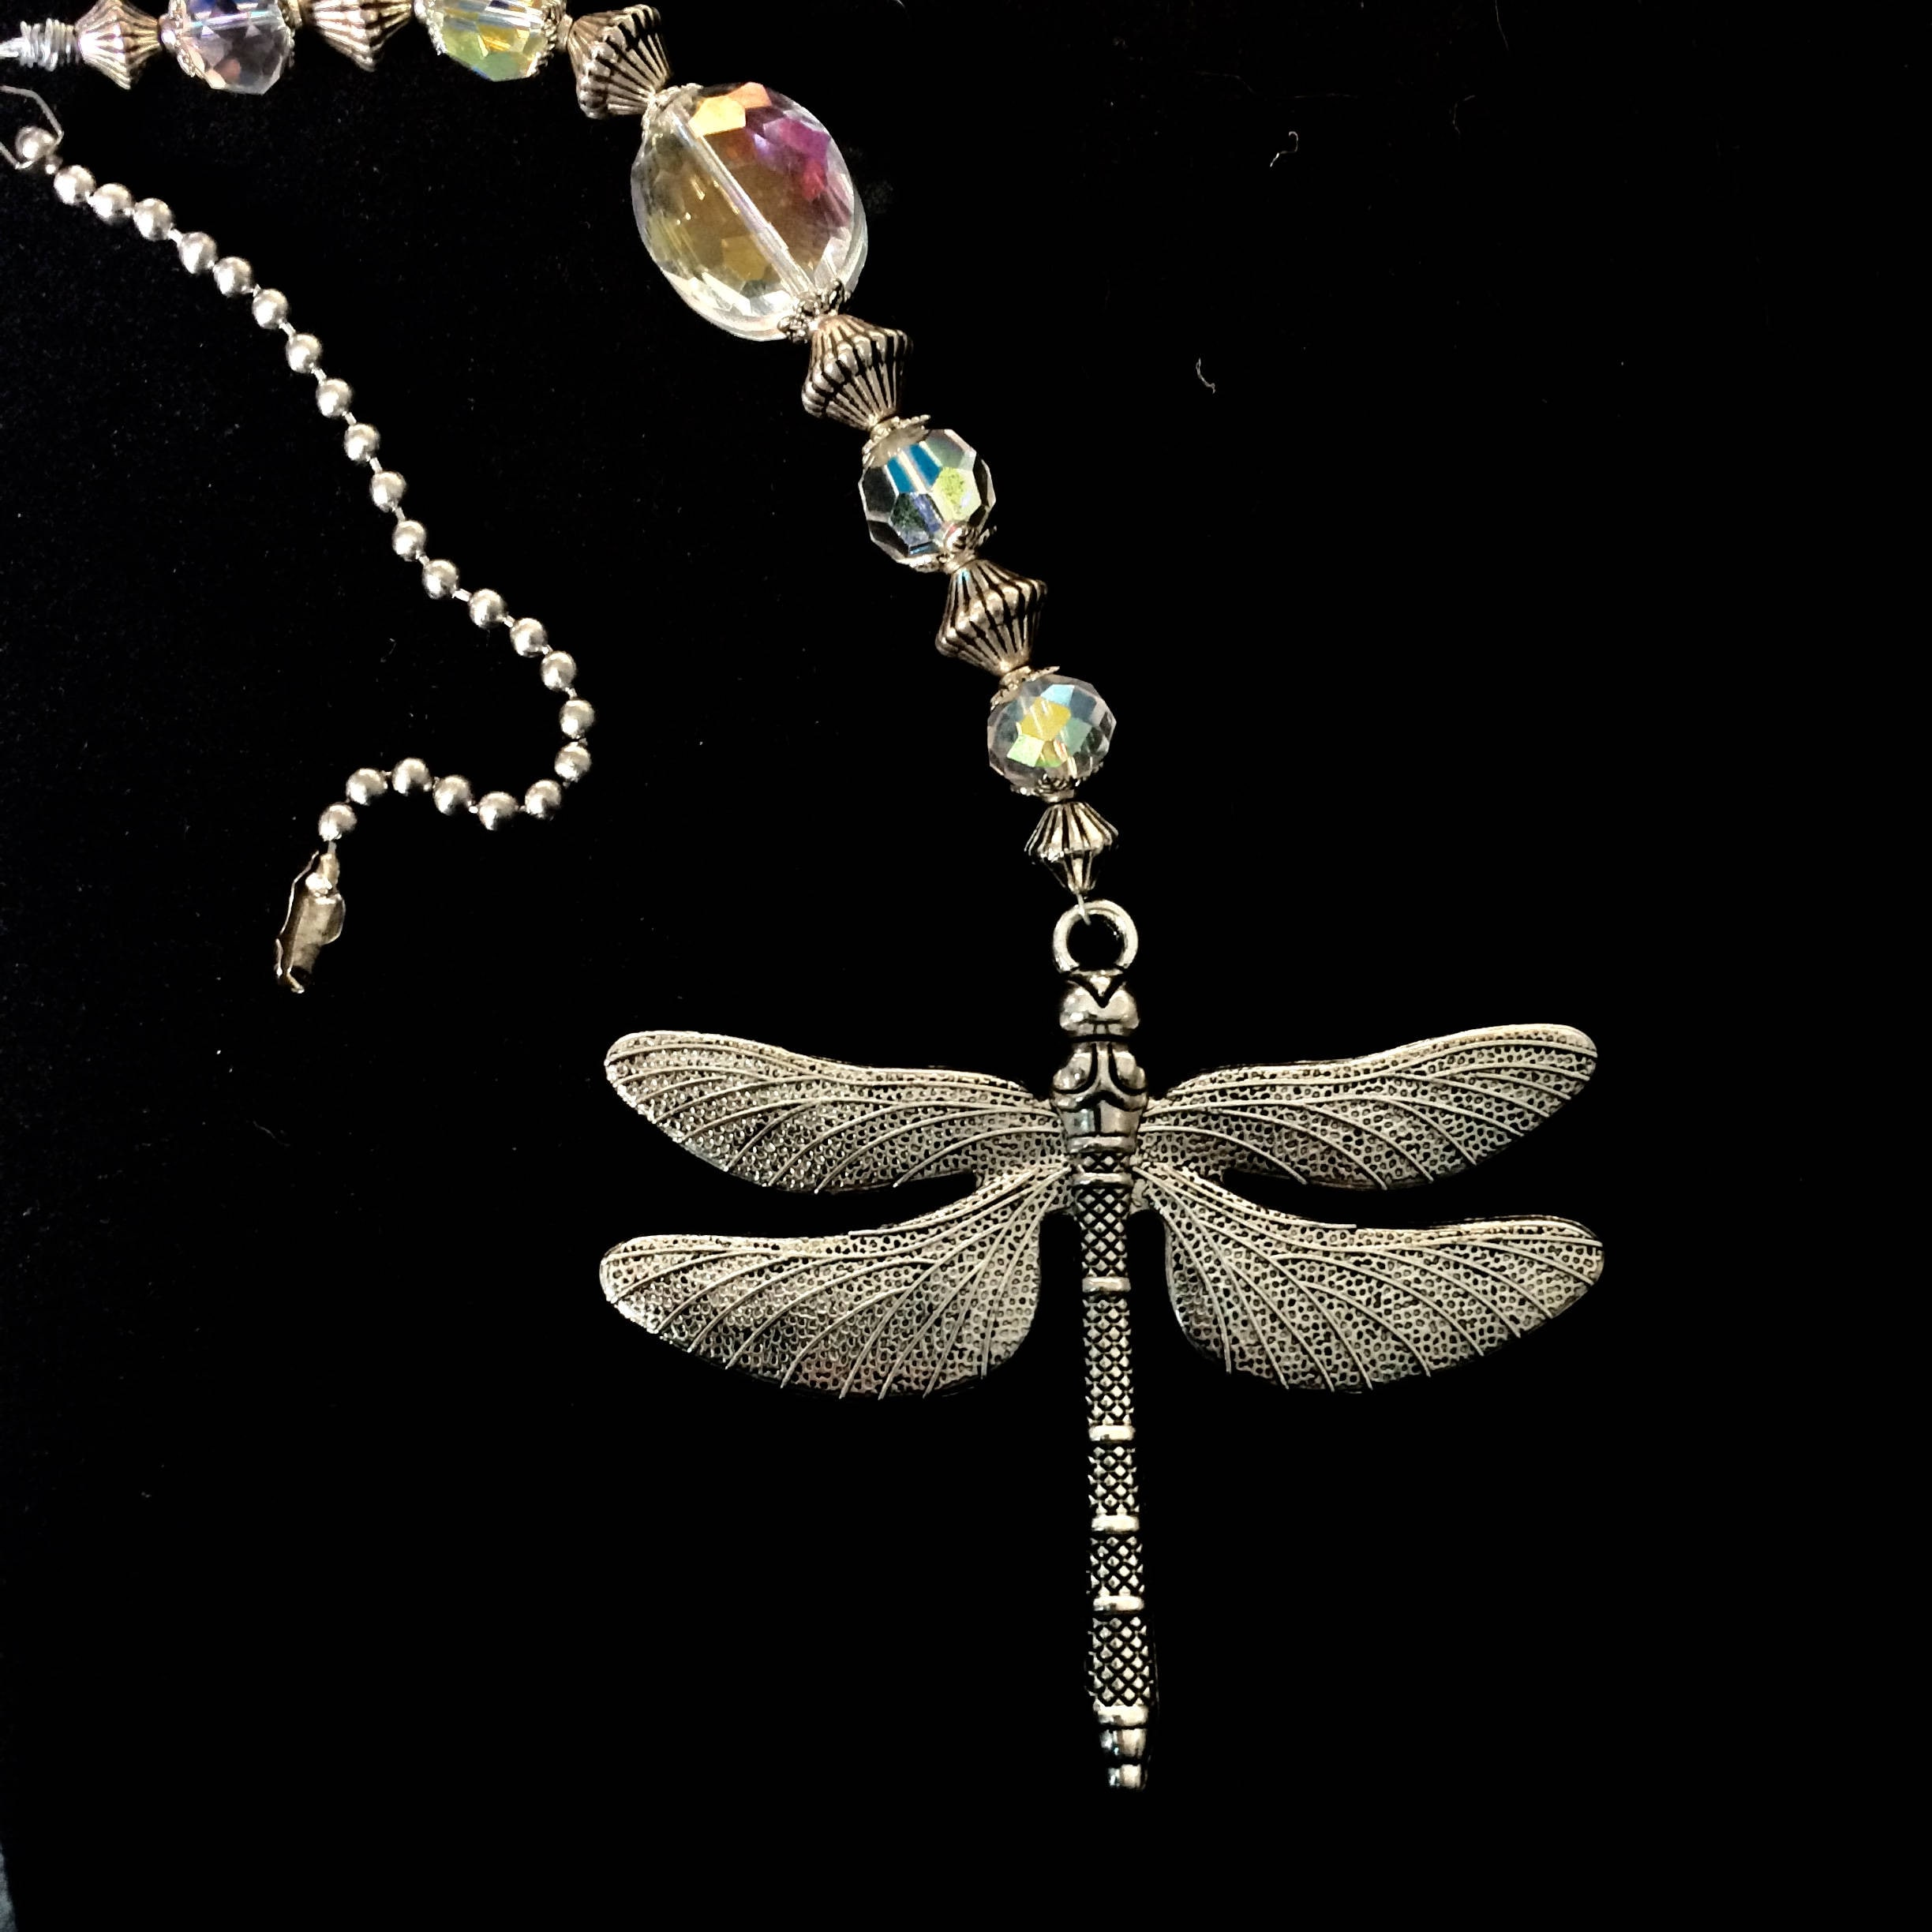 Dragonfly Light Pull Ceiling Fan Pulls Decorative Ball